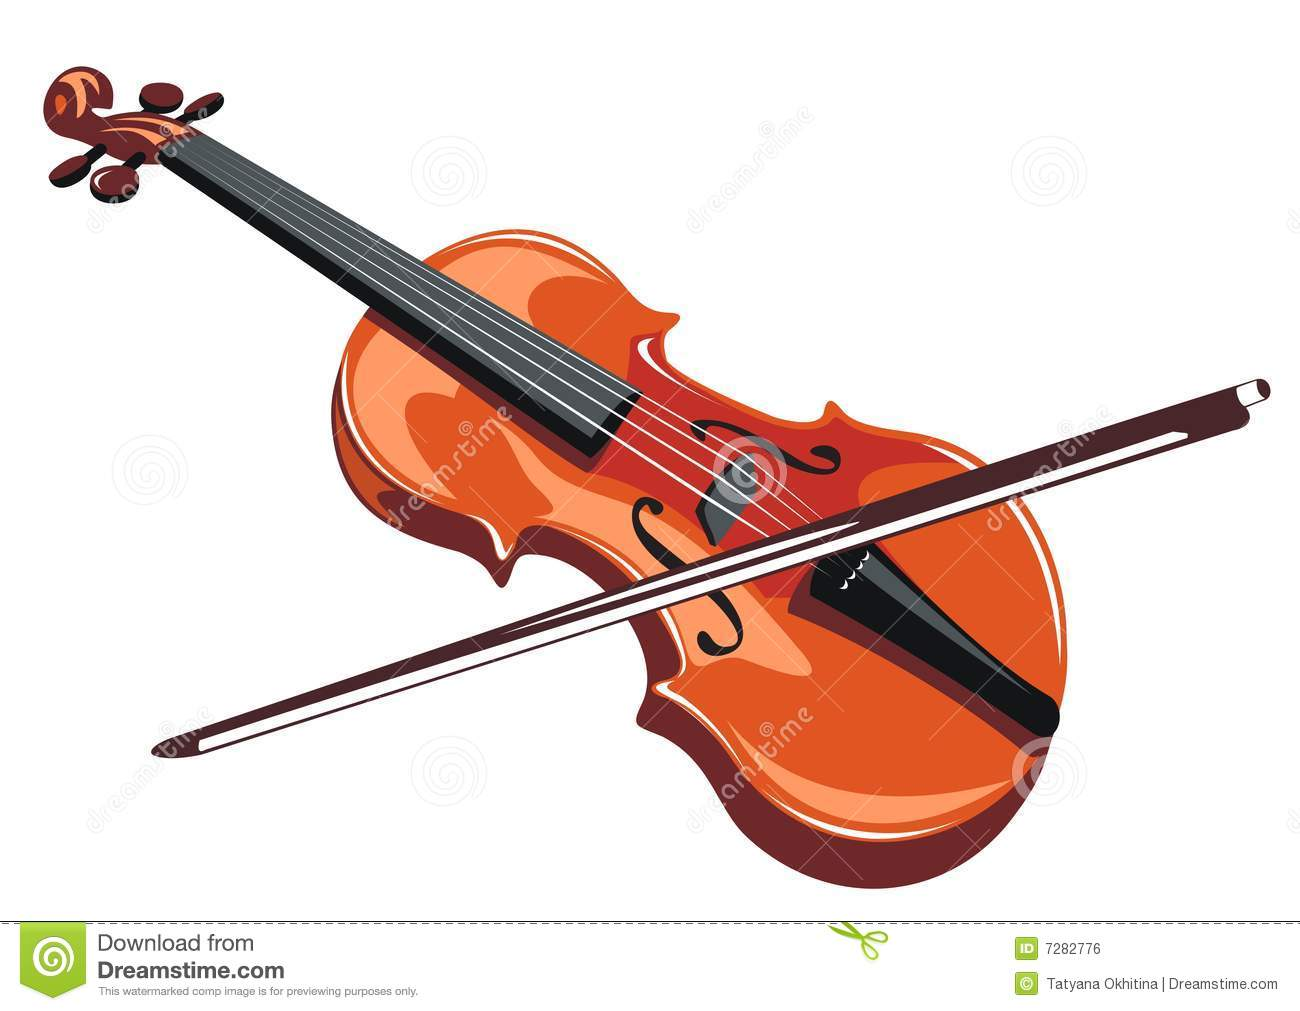 Stylized Violin And Bow Isolated On A Wh-Stylized Violin And Bow Isolated On A White Background-3